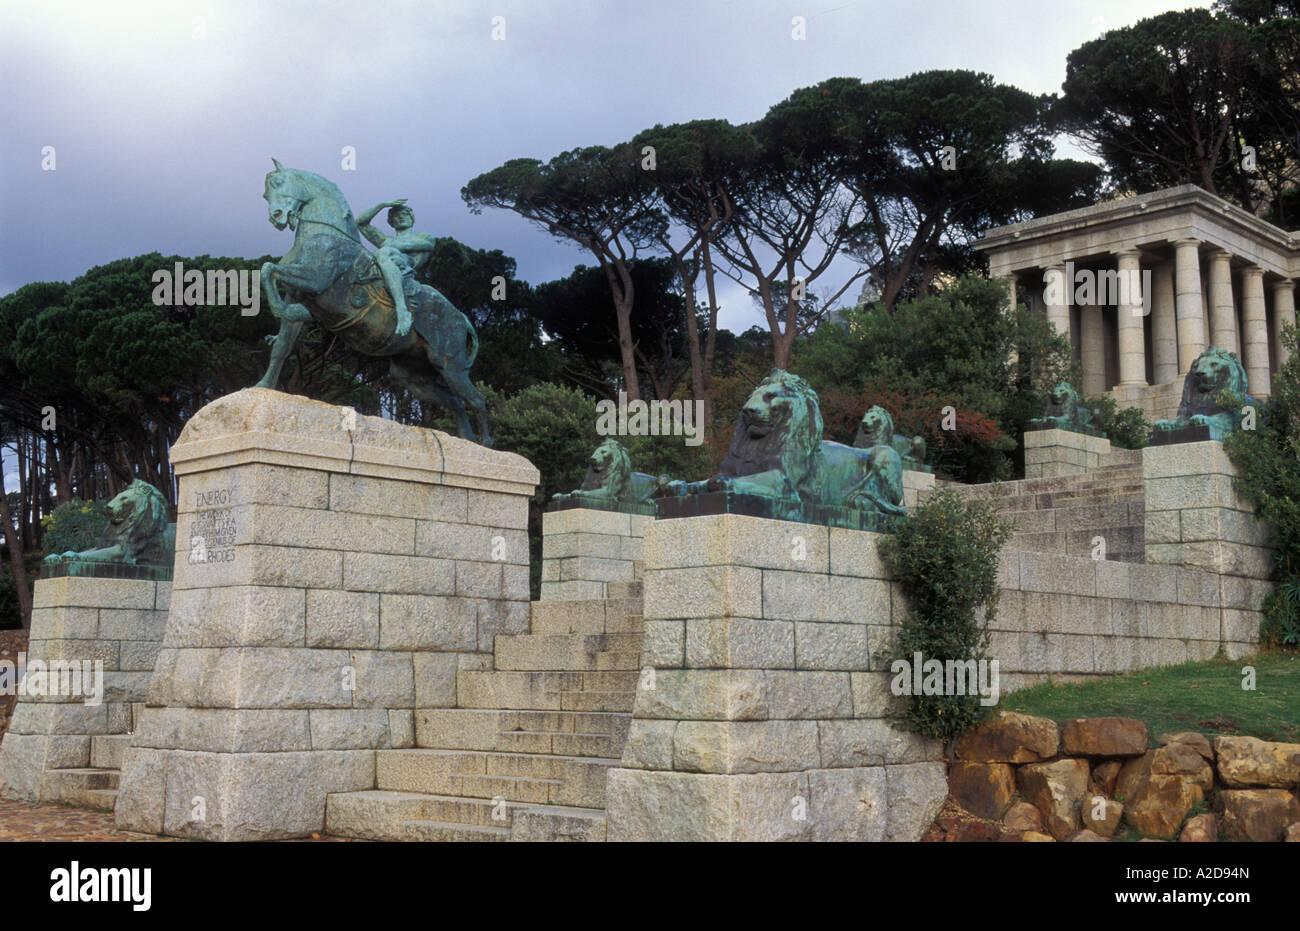 Rhodes memorial granite memorial to Cecil John Rhodes Rondebosch Cape Town South Africa - Stock Image